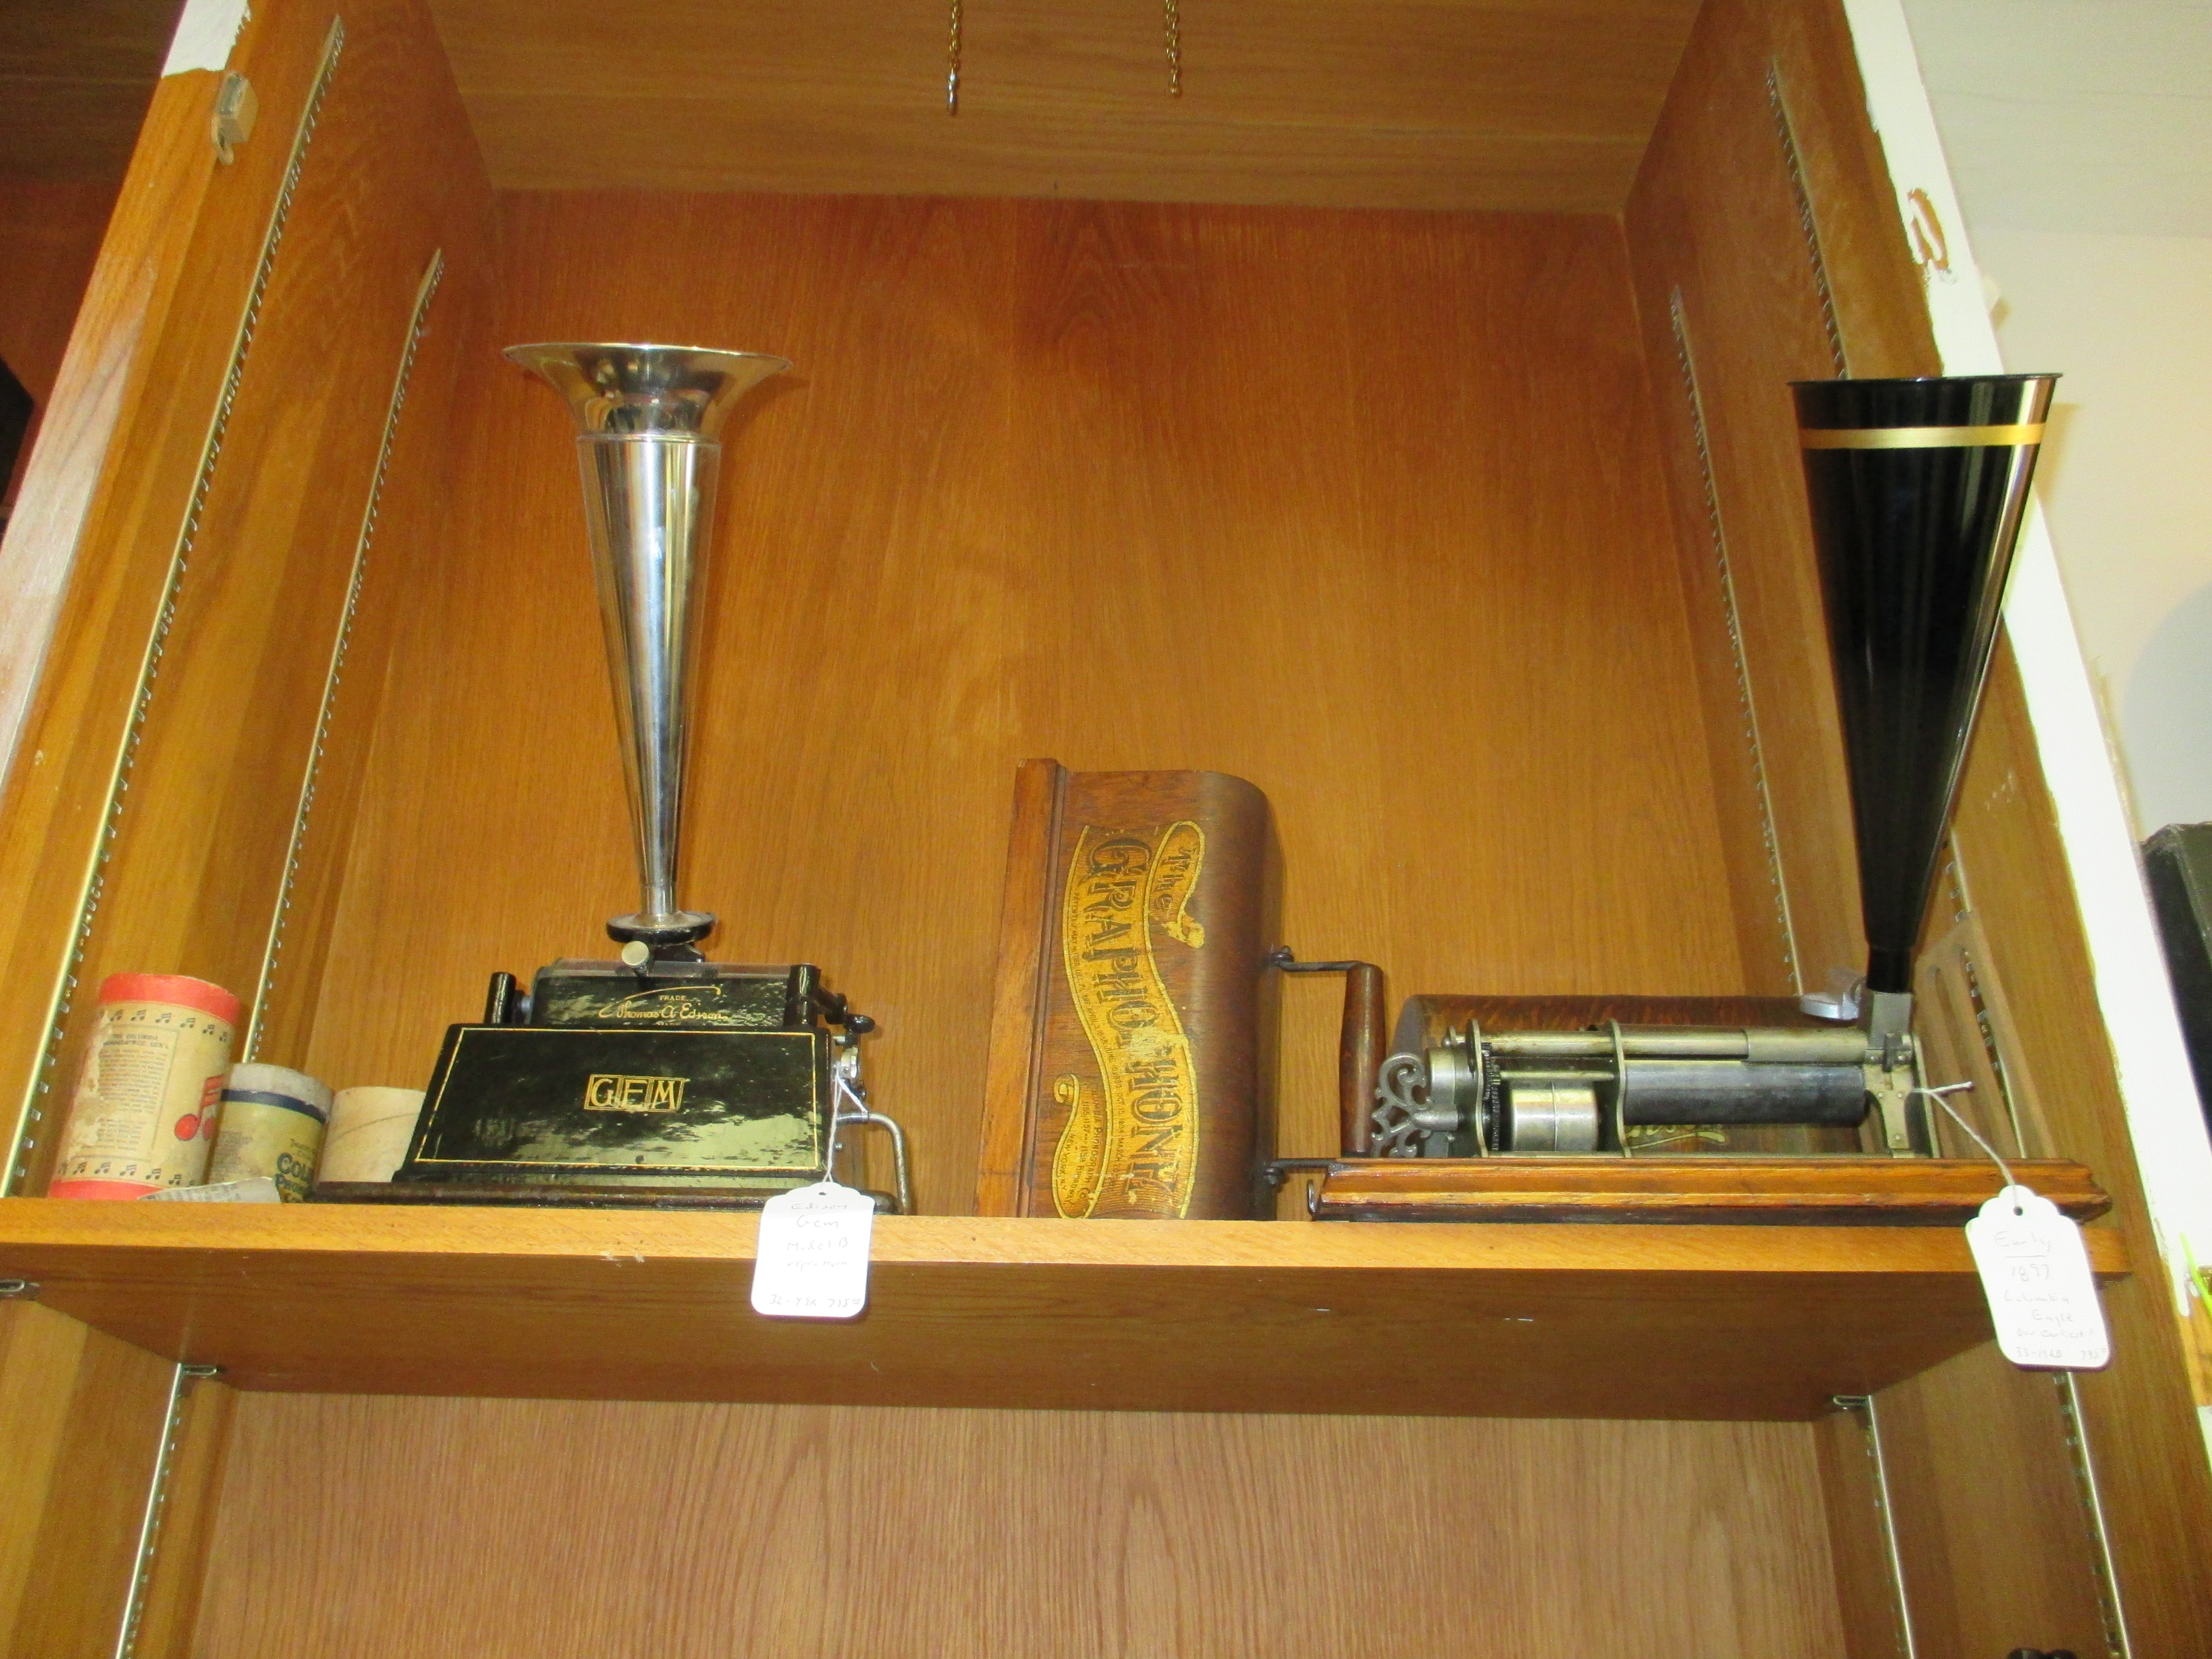 Left, Edison Gem Phonograph Model B c1905 - crank type $795. Right, Columbia Eagle Phonograph 1897 $795